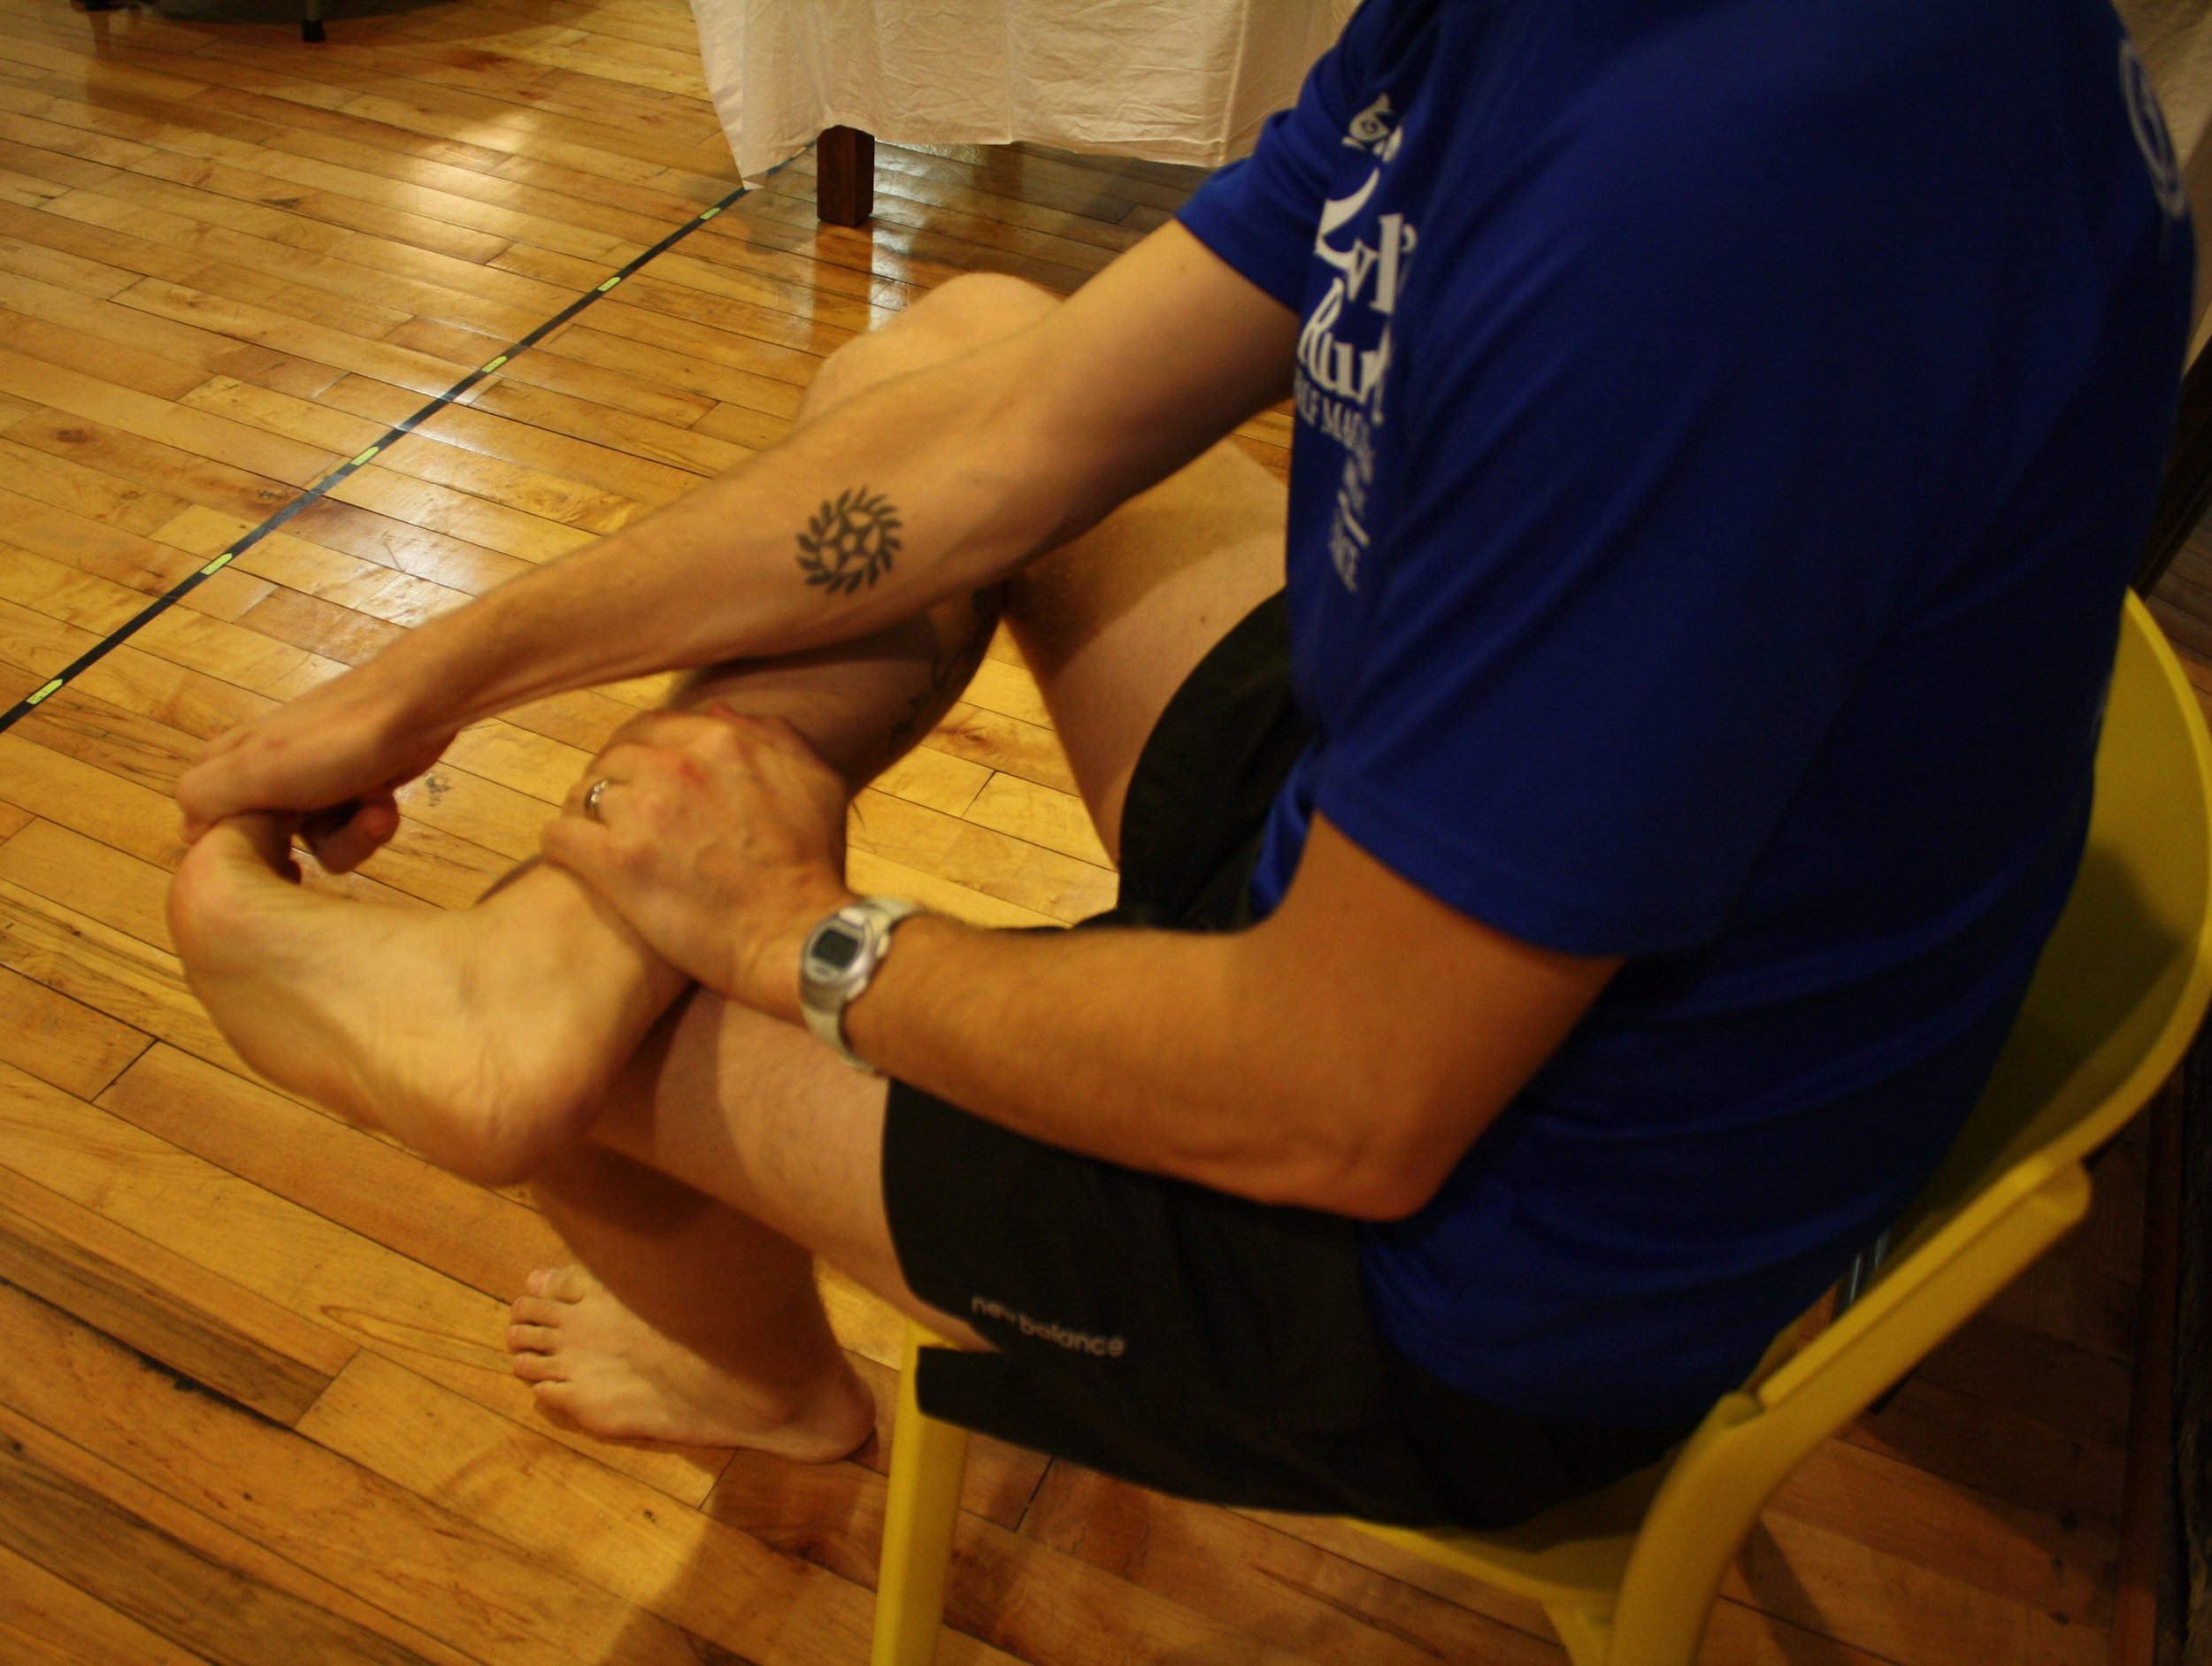 When stretching the toes into extension (dorsiflexion), be sure to maintain the ankle in neutral or slight dorsiflexion as well.